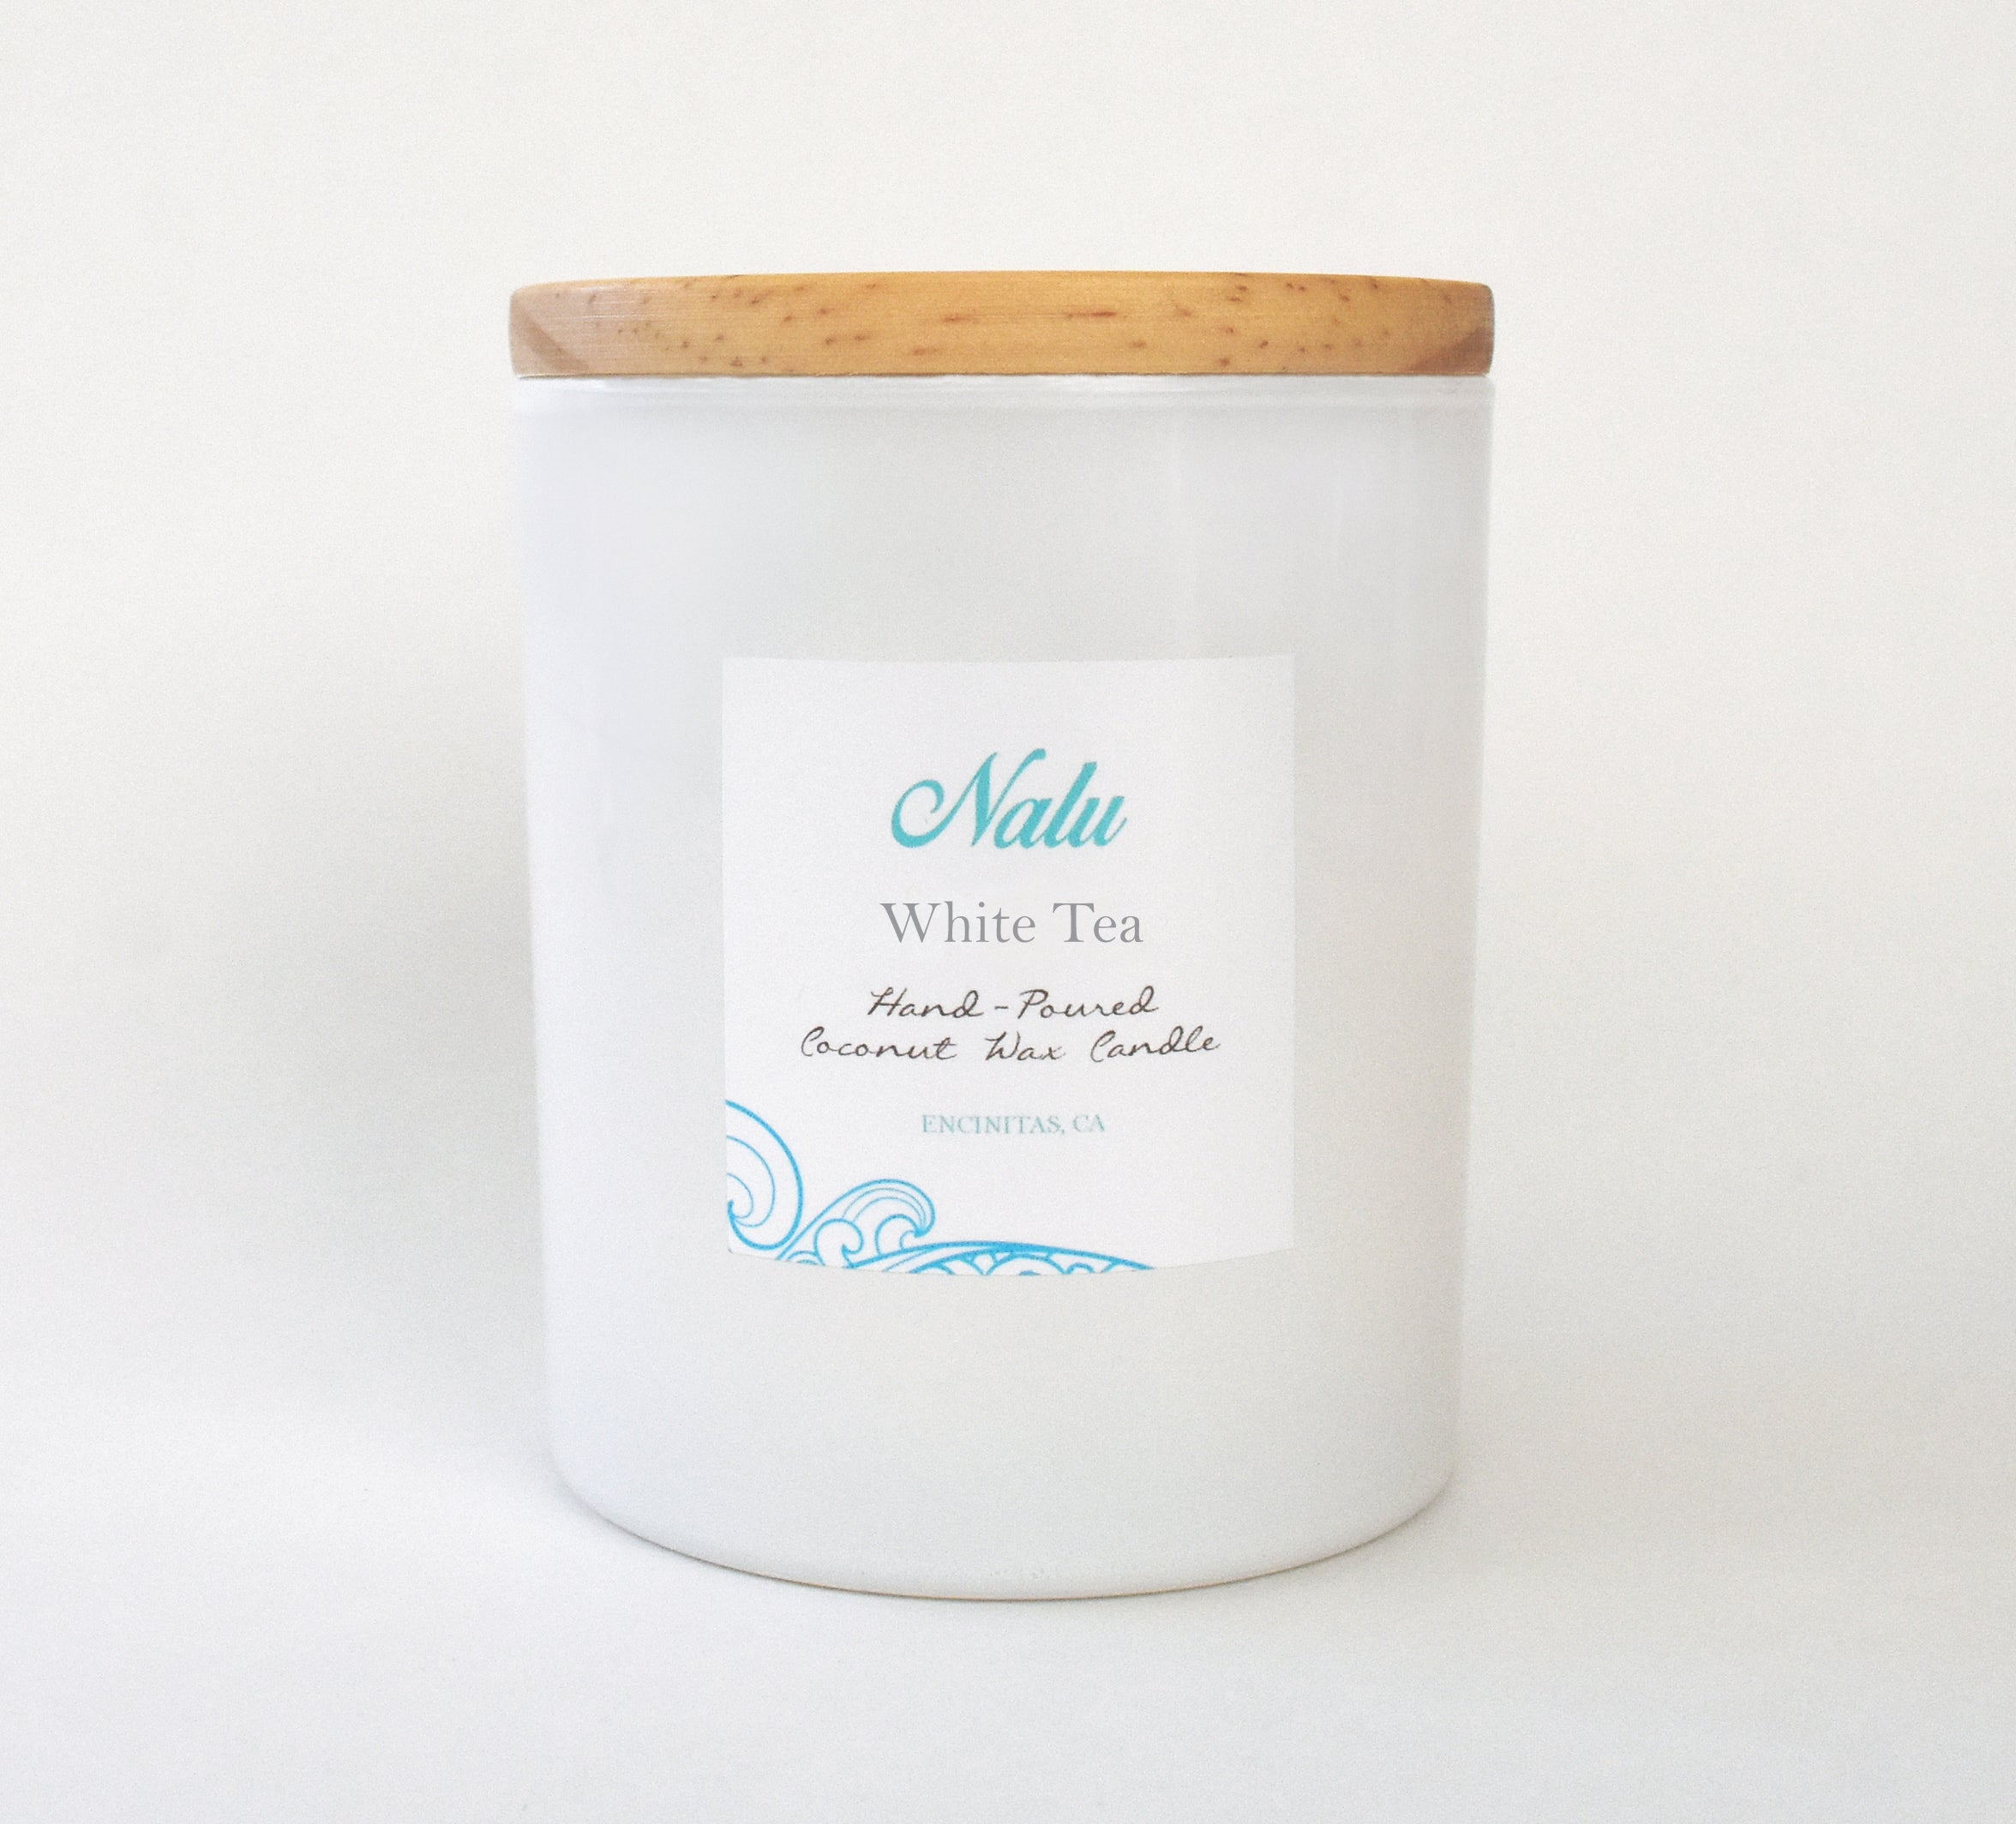 White Tea 13.5 oz. Candle